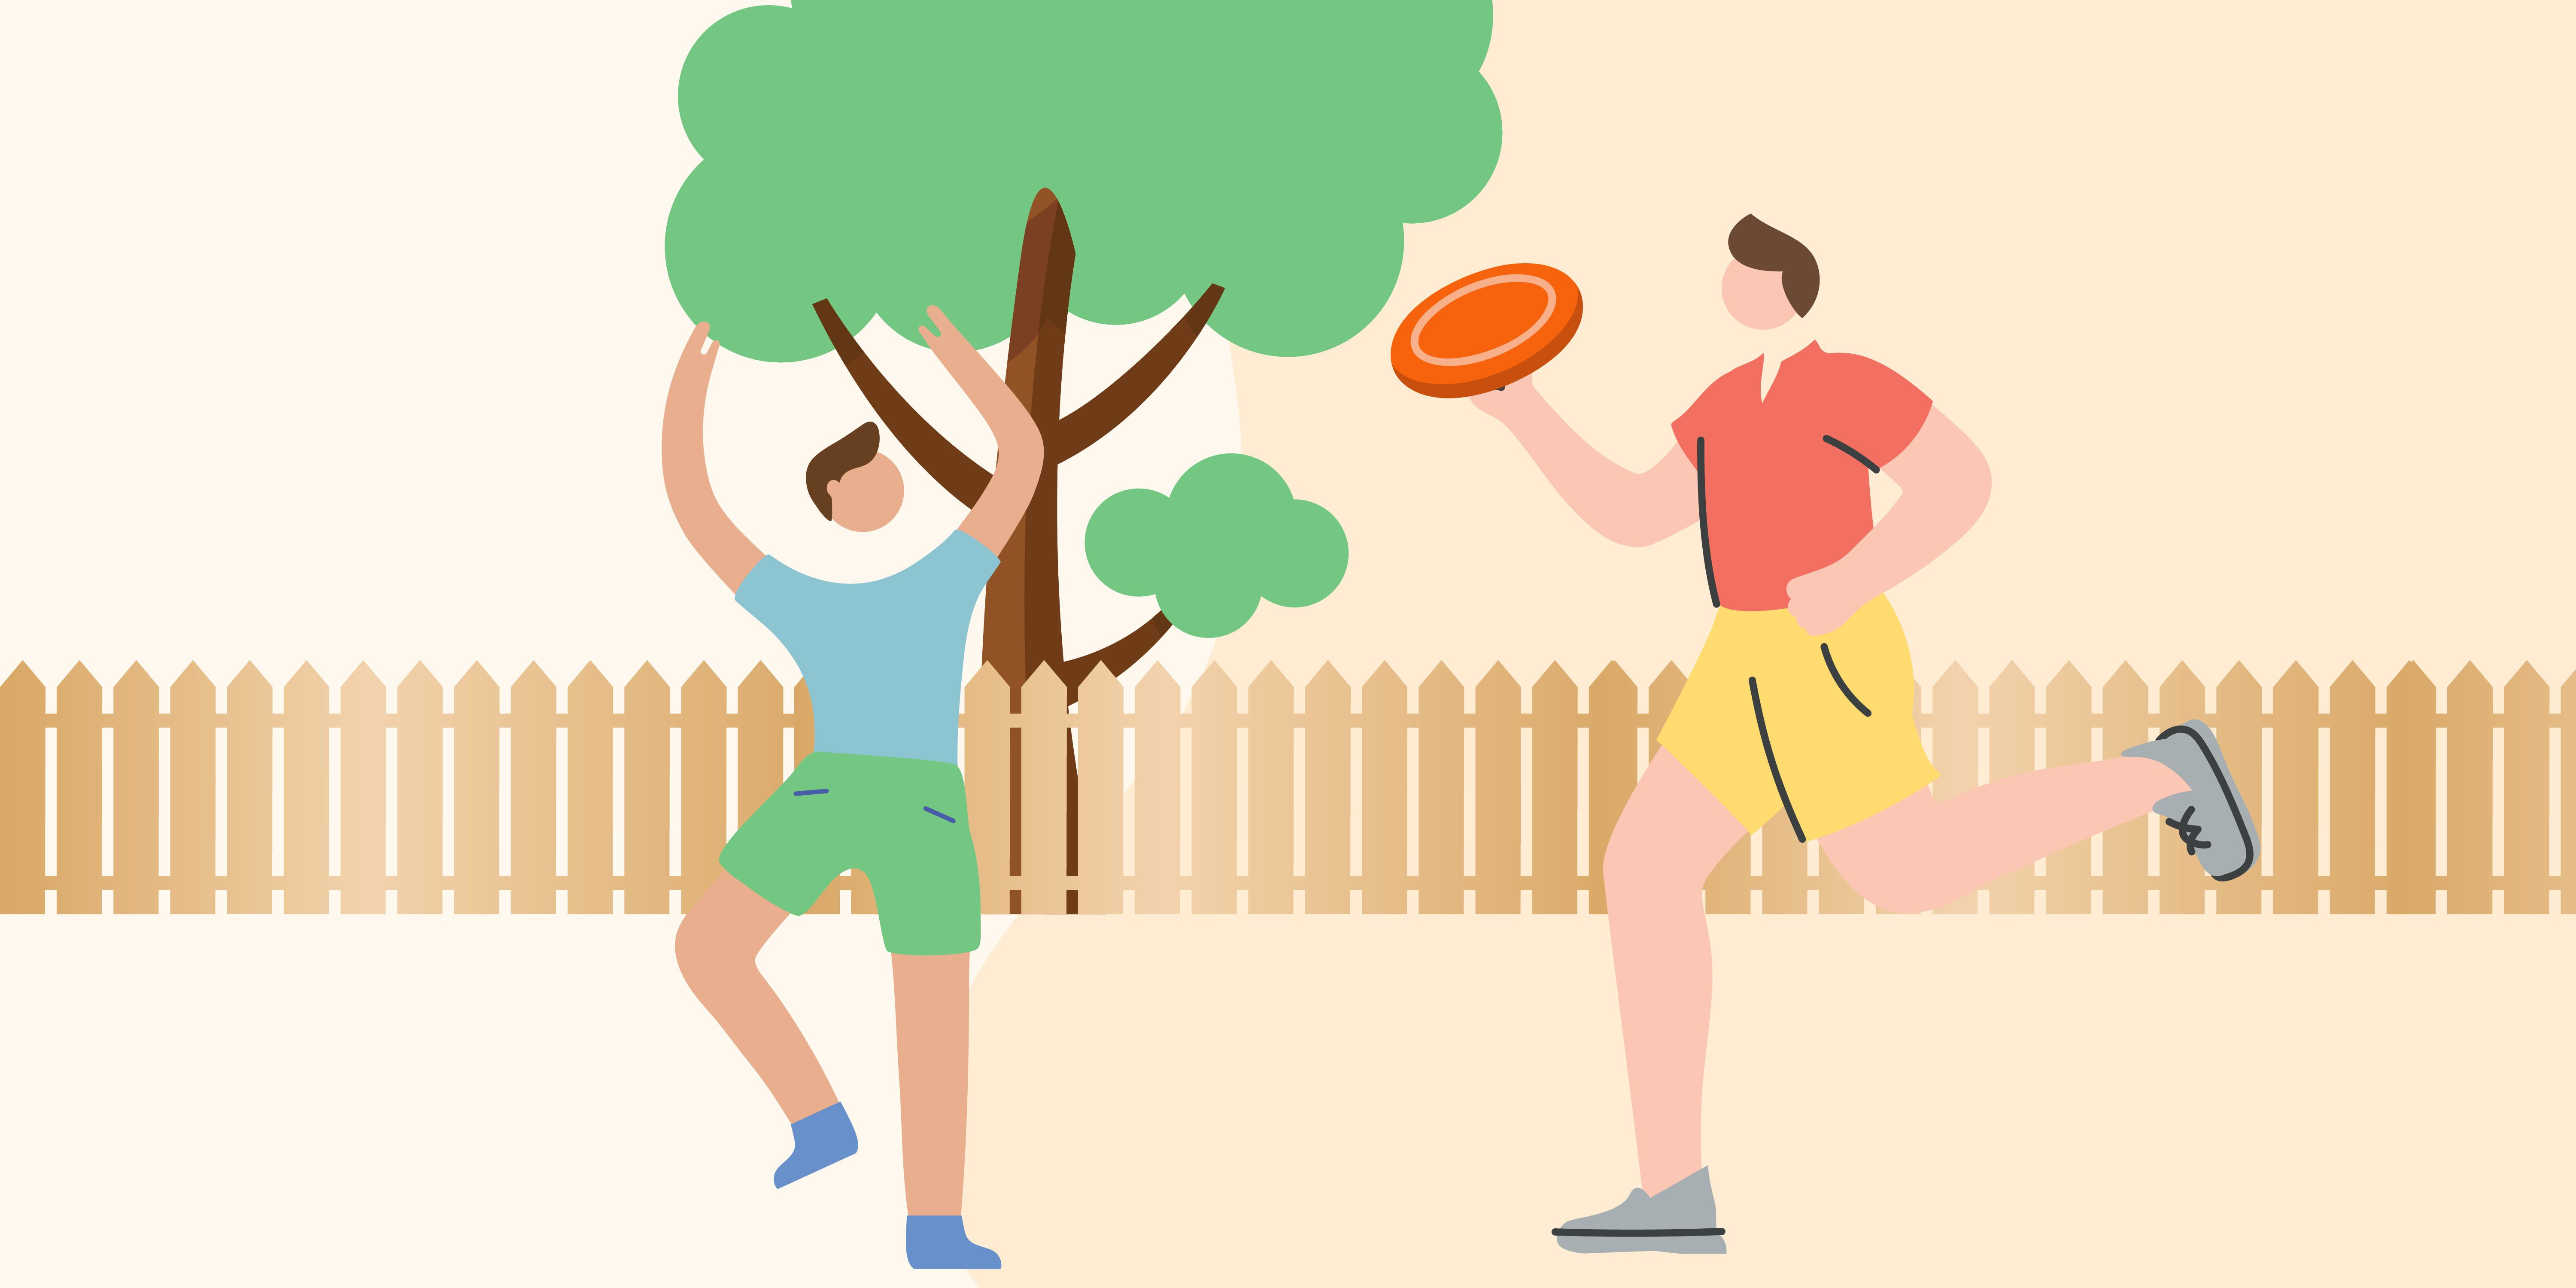 22 Best Summer Games And Activities To Play Outside Fun Outdoor Game Ideas For Kids And Adults